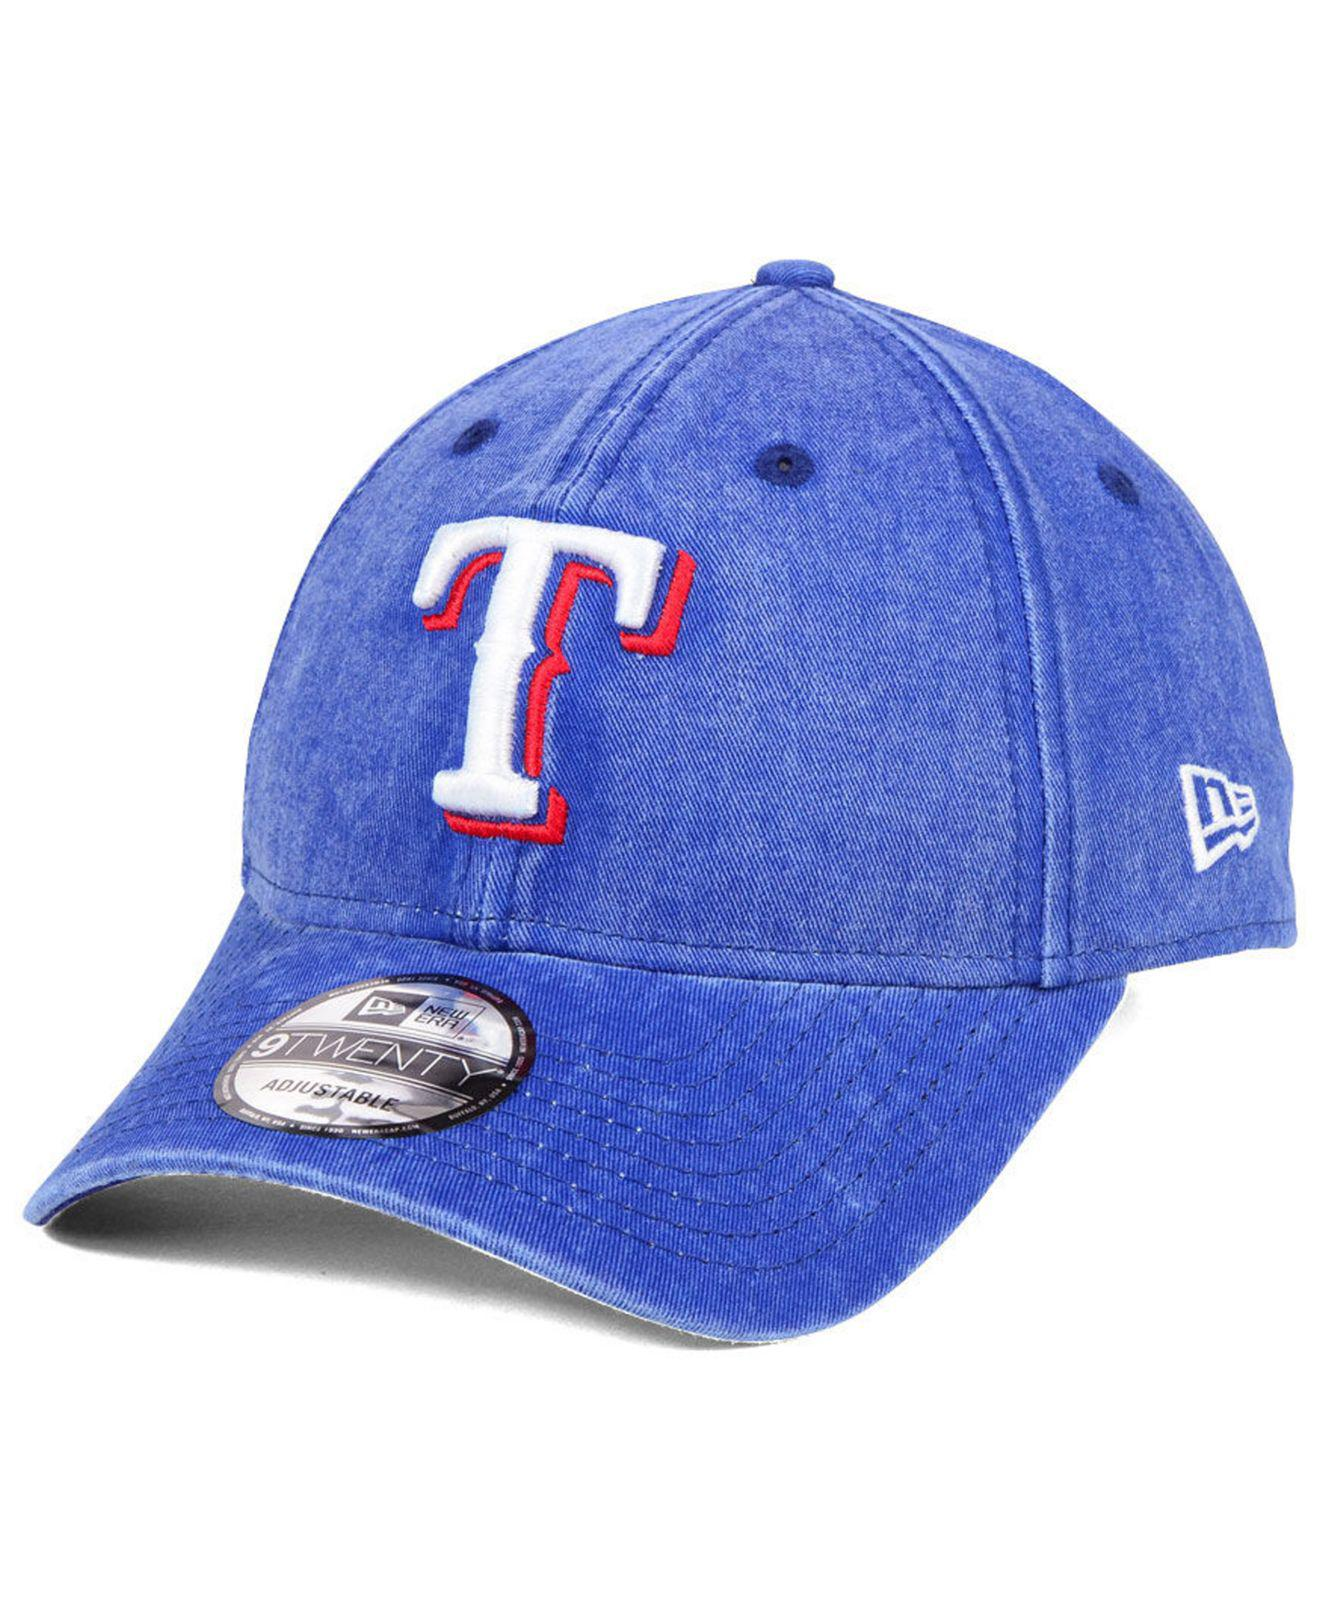 Lyst - Ktz Texas Rangers Italian Washed 9twenty Cap in Blue for Men 993abdac0ac8